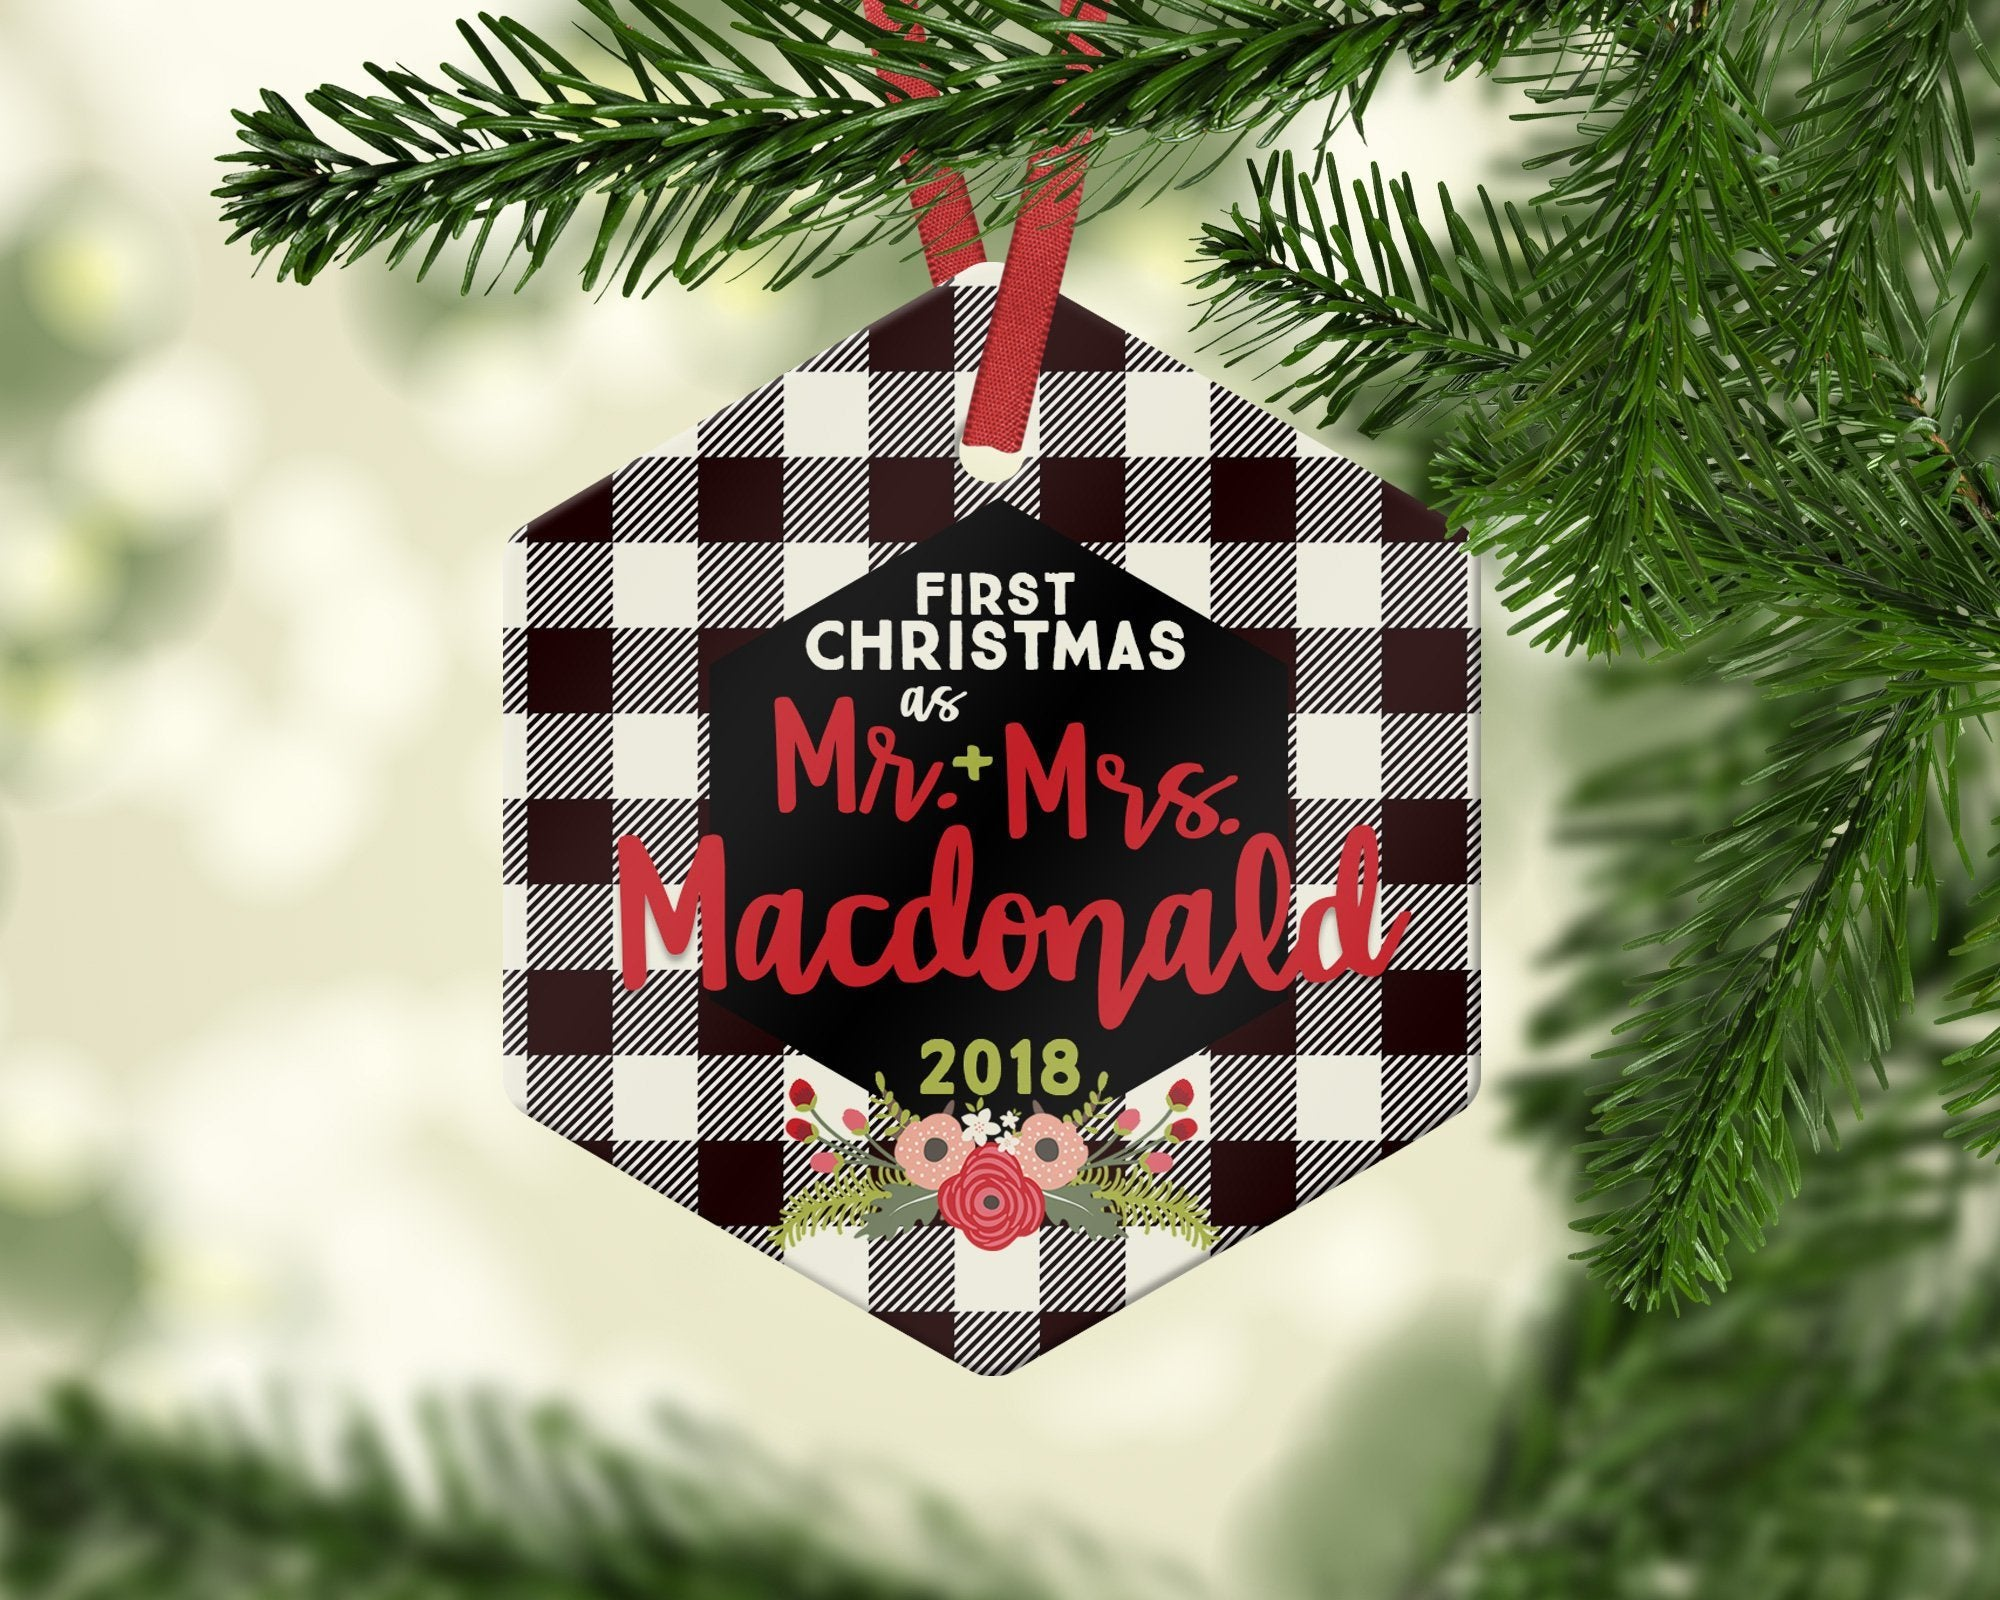 Farmhouse Mr and Mrs Christmas Ornament Customized for gift giving - Ornament